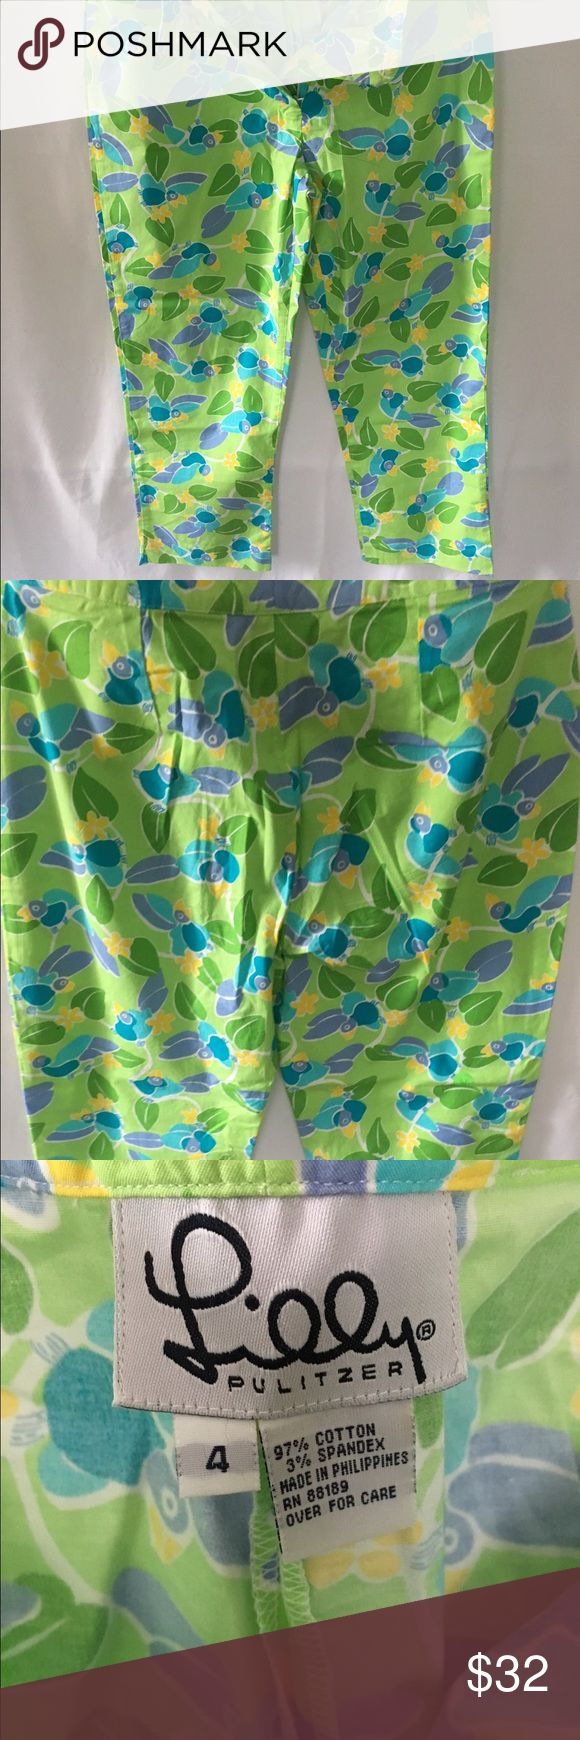 Sweet Lilly Pulitzer Capris Size 4 Sweet Blue Tropical 🐦 Blue Birds Hiding About the Tropical Brush.        🎍🌴🎋🌱 🌼Ready To Sing Their Morning Alarm Clock Song!!               No Pockets, Nor Belt Loop- Just adorable For Breakfast & The Club!  Worn maybe 2 times...     Please Know Your Lilly Pulitzer Sizes Lilly Pulitzer Pants Capris